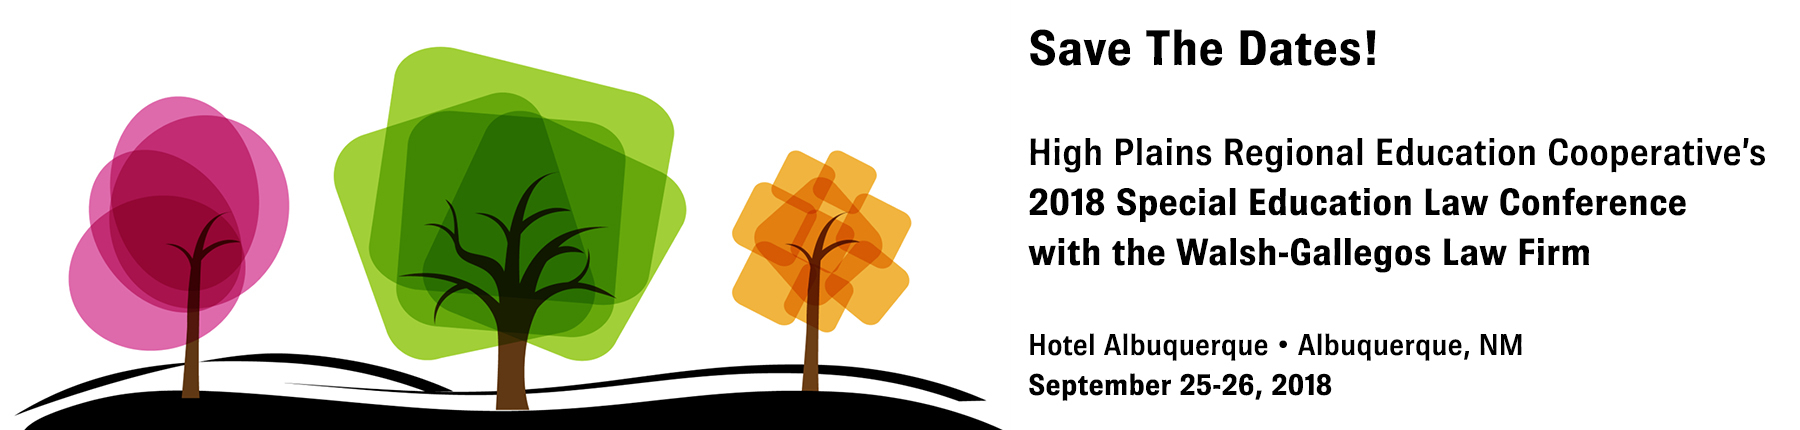 Save the dates high plains regional education cooperatives 2018 special education law conference with the walsh gallegos law firm hotel albuquerque albuquerque new mexico september twenty fifth to twenty sixth twenty eighteen